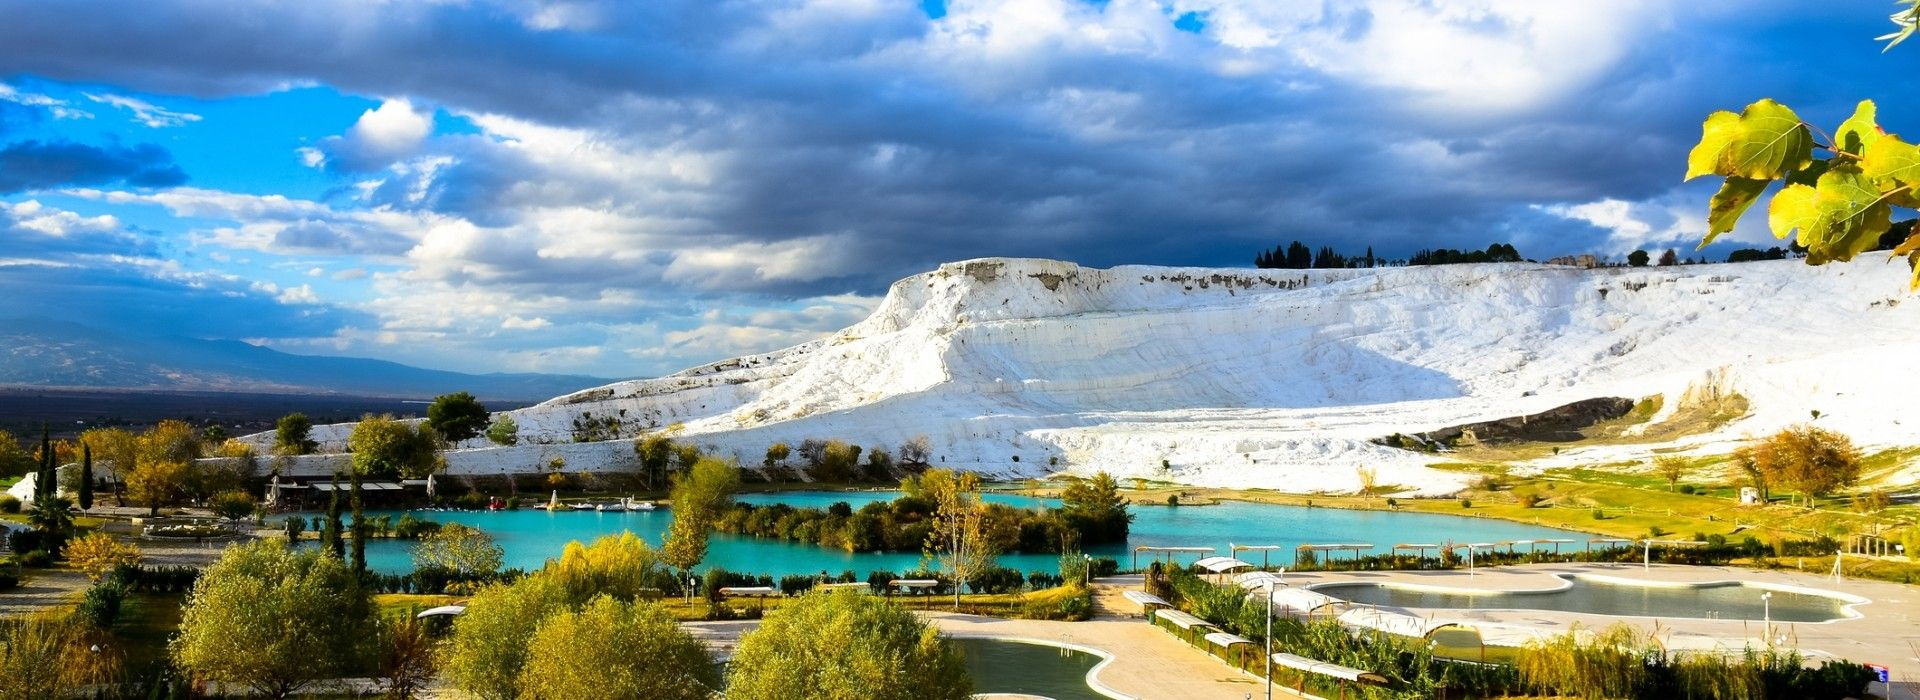 Sightseeing, attractions, culture and history Tours in Turkey